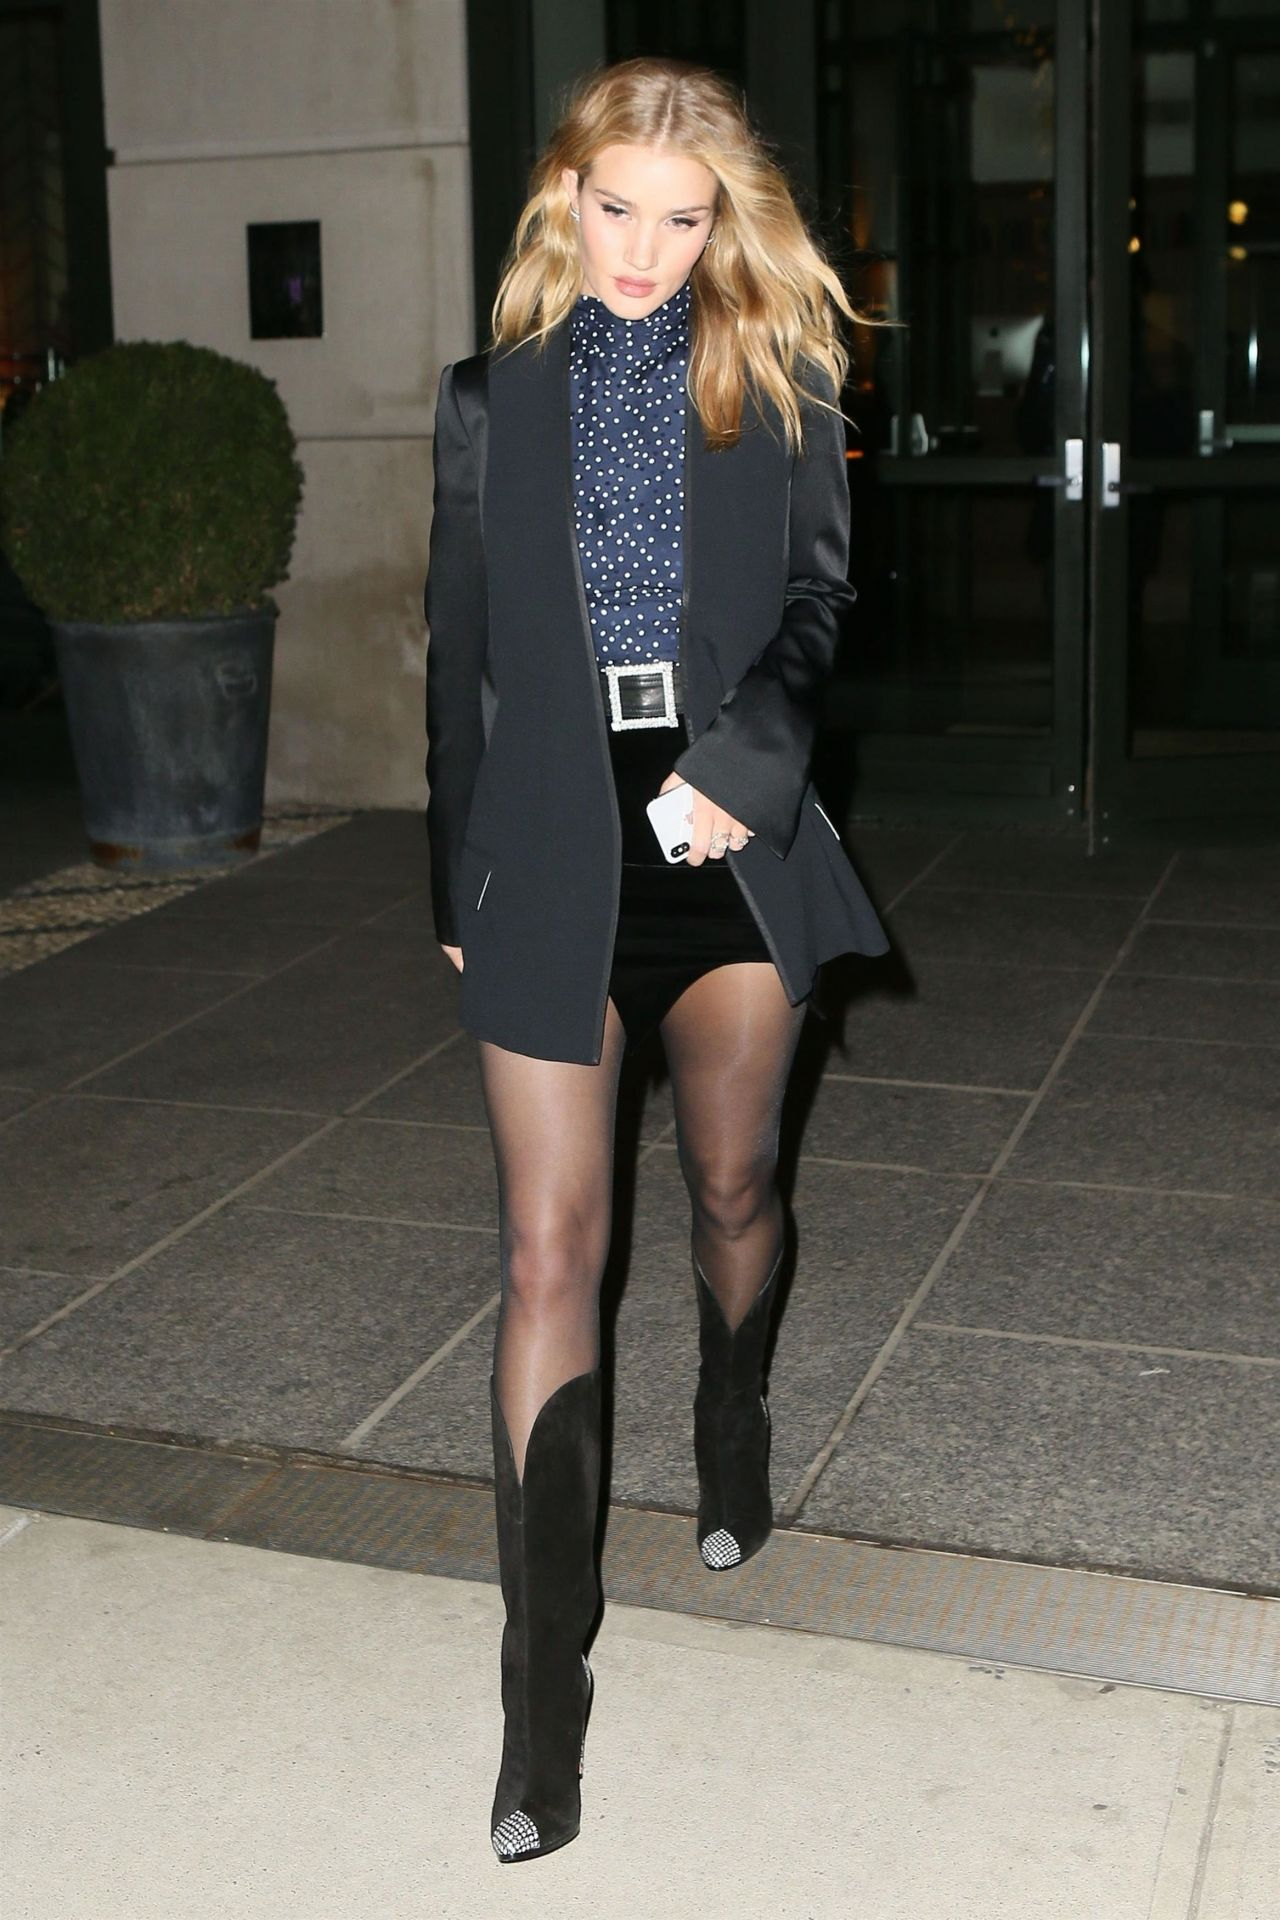 Rosie Huntington Whiteley Wearing Cowboy Boots And A Mini